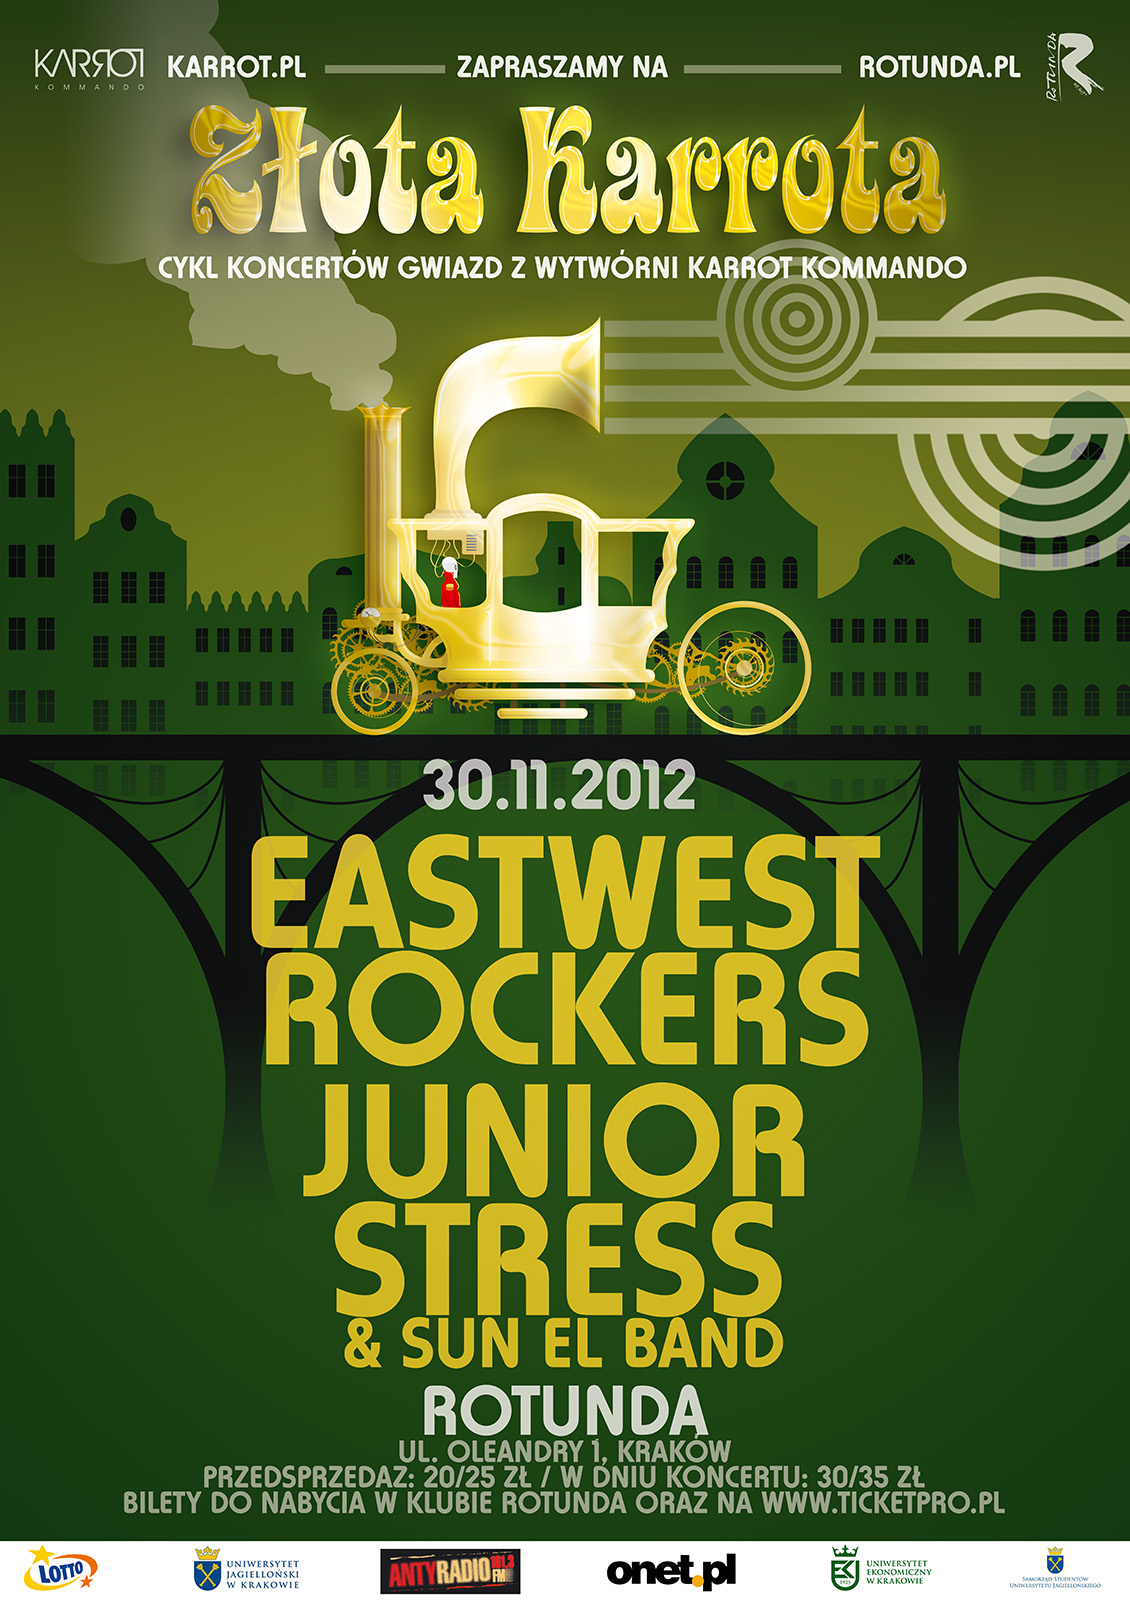 Eastwest Rockers oraz Junior Stress & Sun El Band w Rotundzie